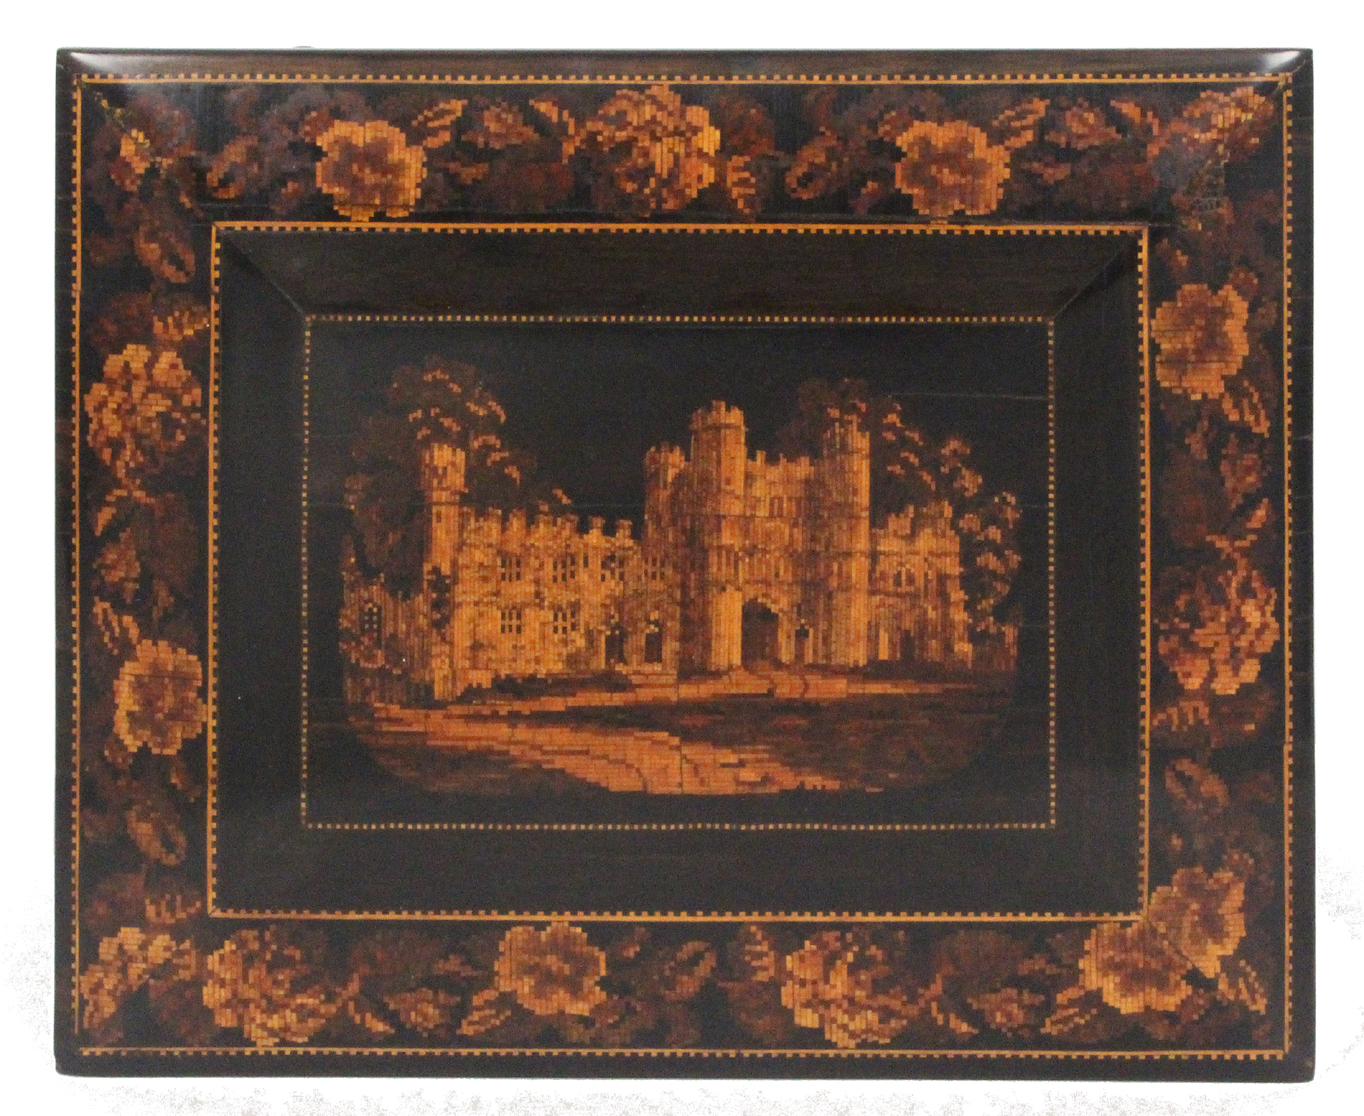 Lot 4 - A Tunbridge ware sewing casket in coromandel wood and mosaic, probably by Thomas Barton, the cushion